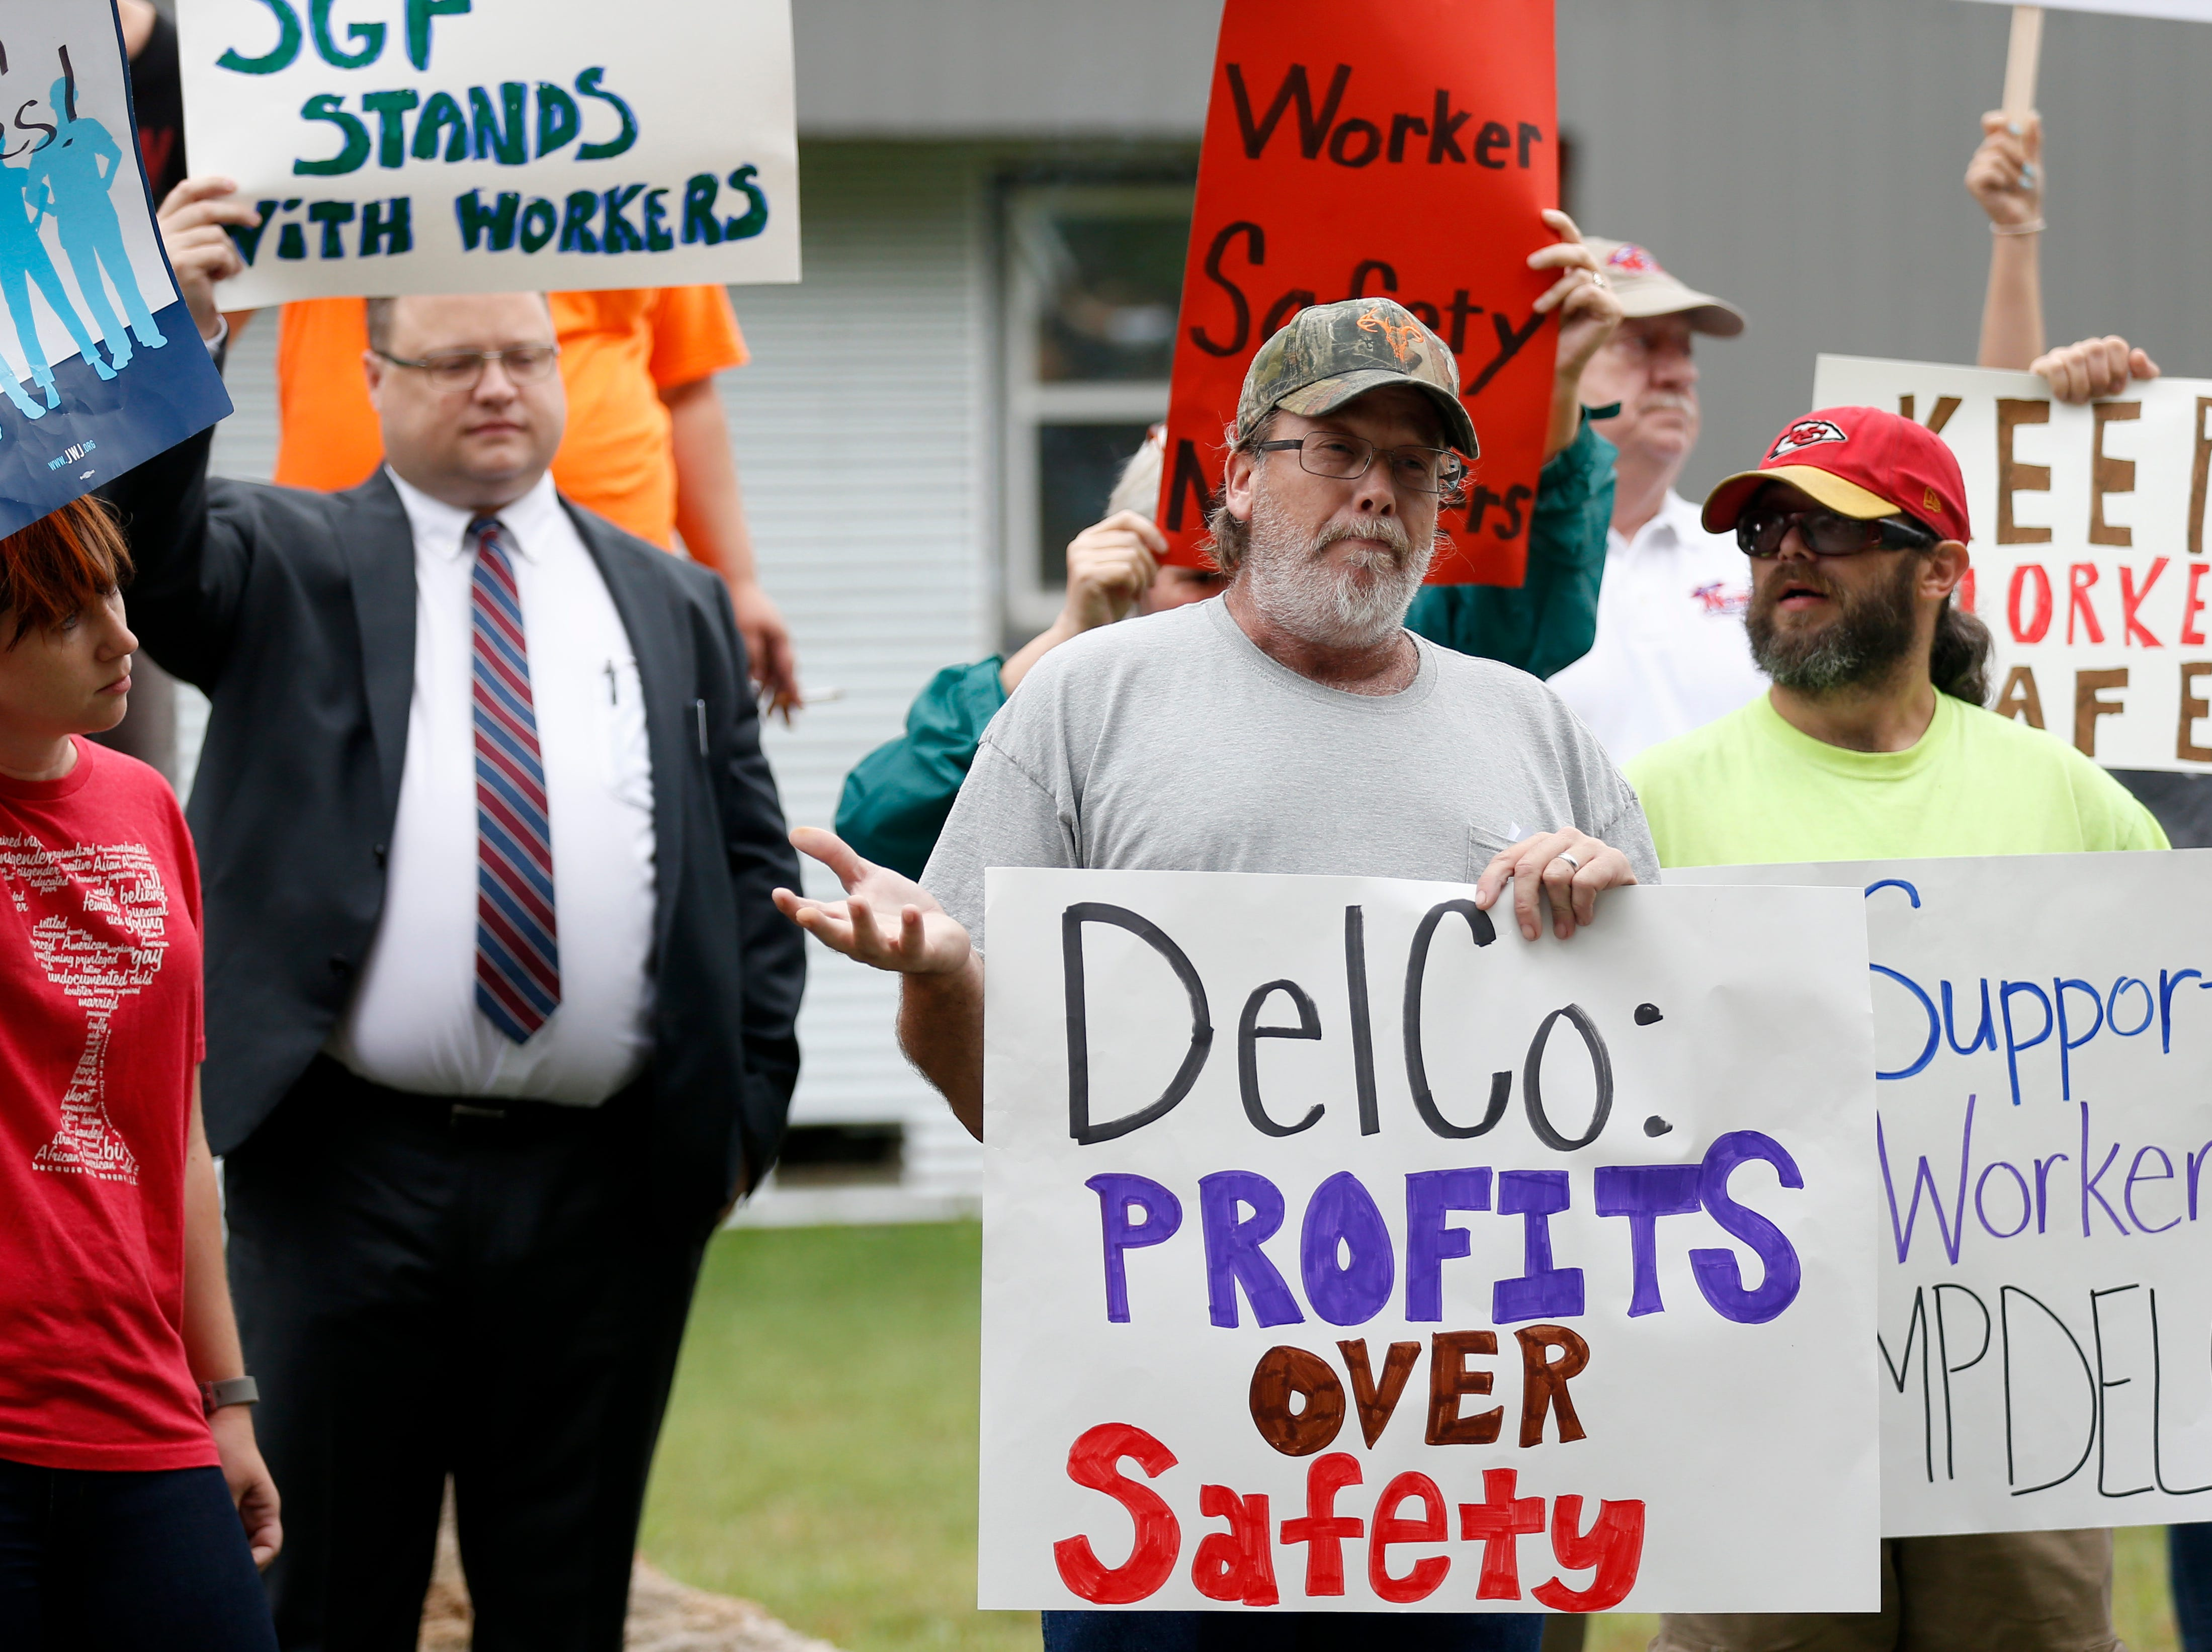 Protestors Mike Morrison (left) and Chris Choates speak about the working conditions at DelCo Construction outside the business on Tuesday, Aug. 14, 2018. Protestors claimed that DelCo and its owner, Jeff Delmont, subject workers to unsafe conditions, low wages, and inadequate training.